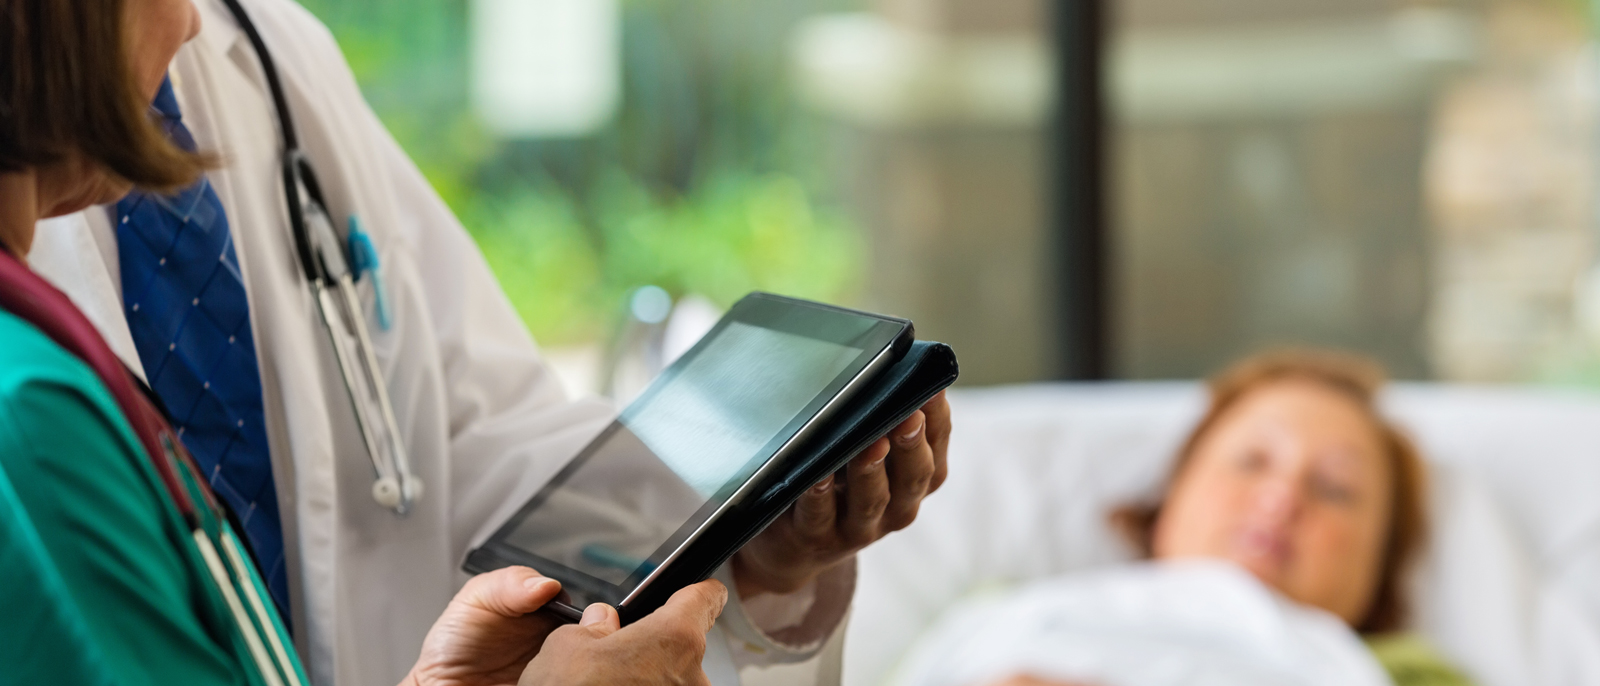 Doctors use electronic health records with patient